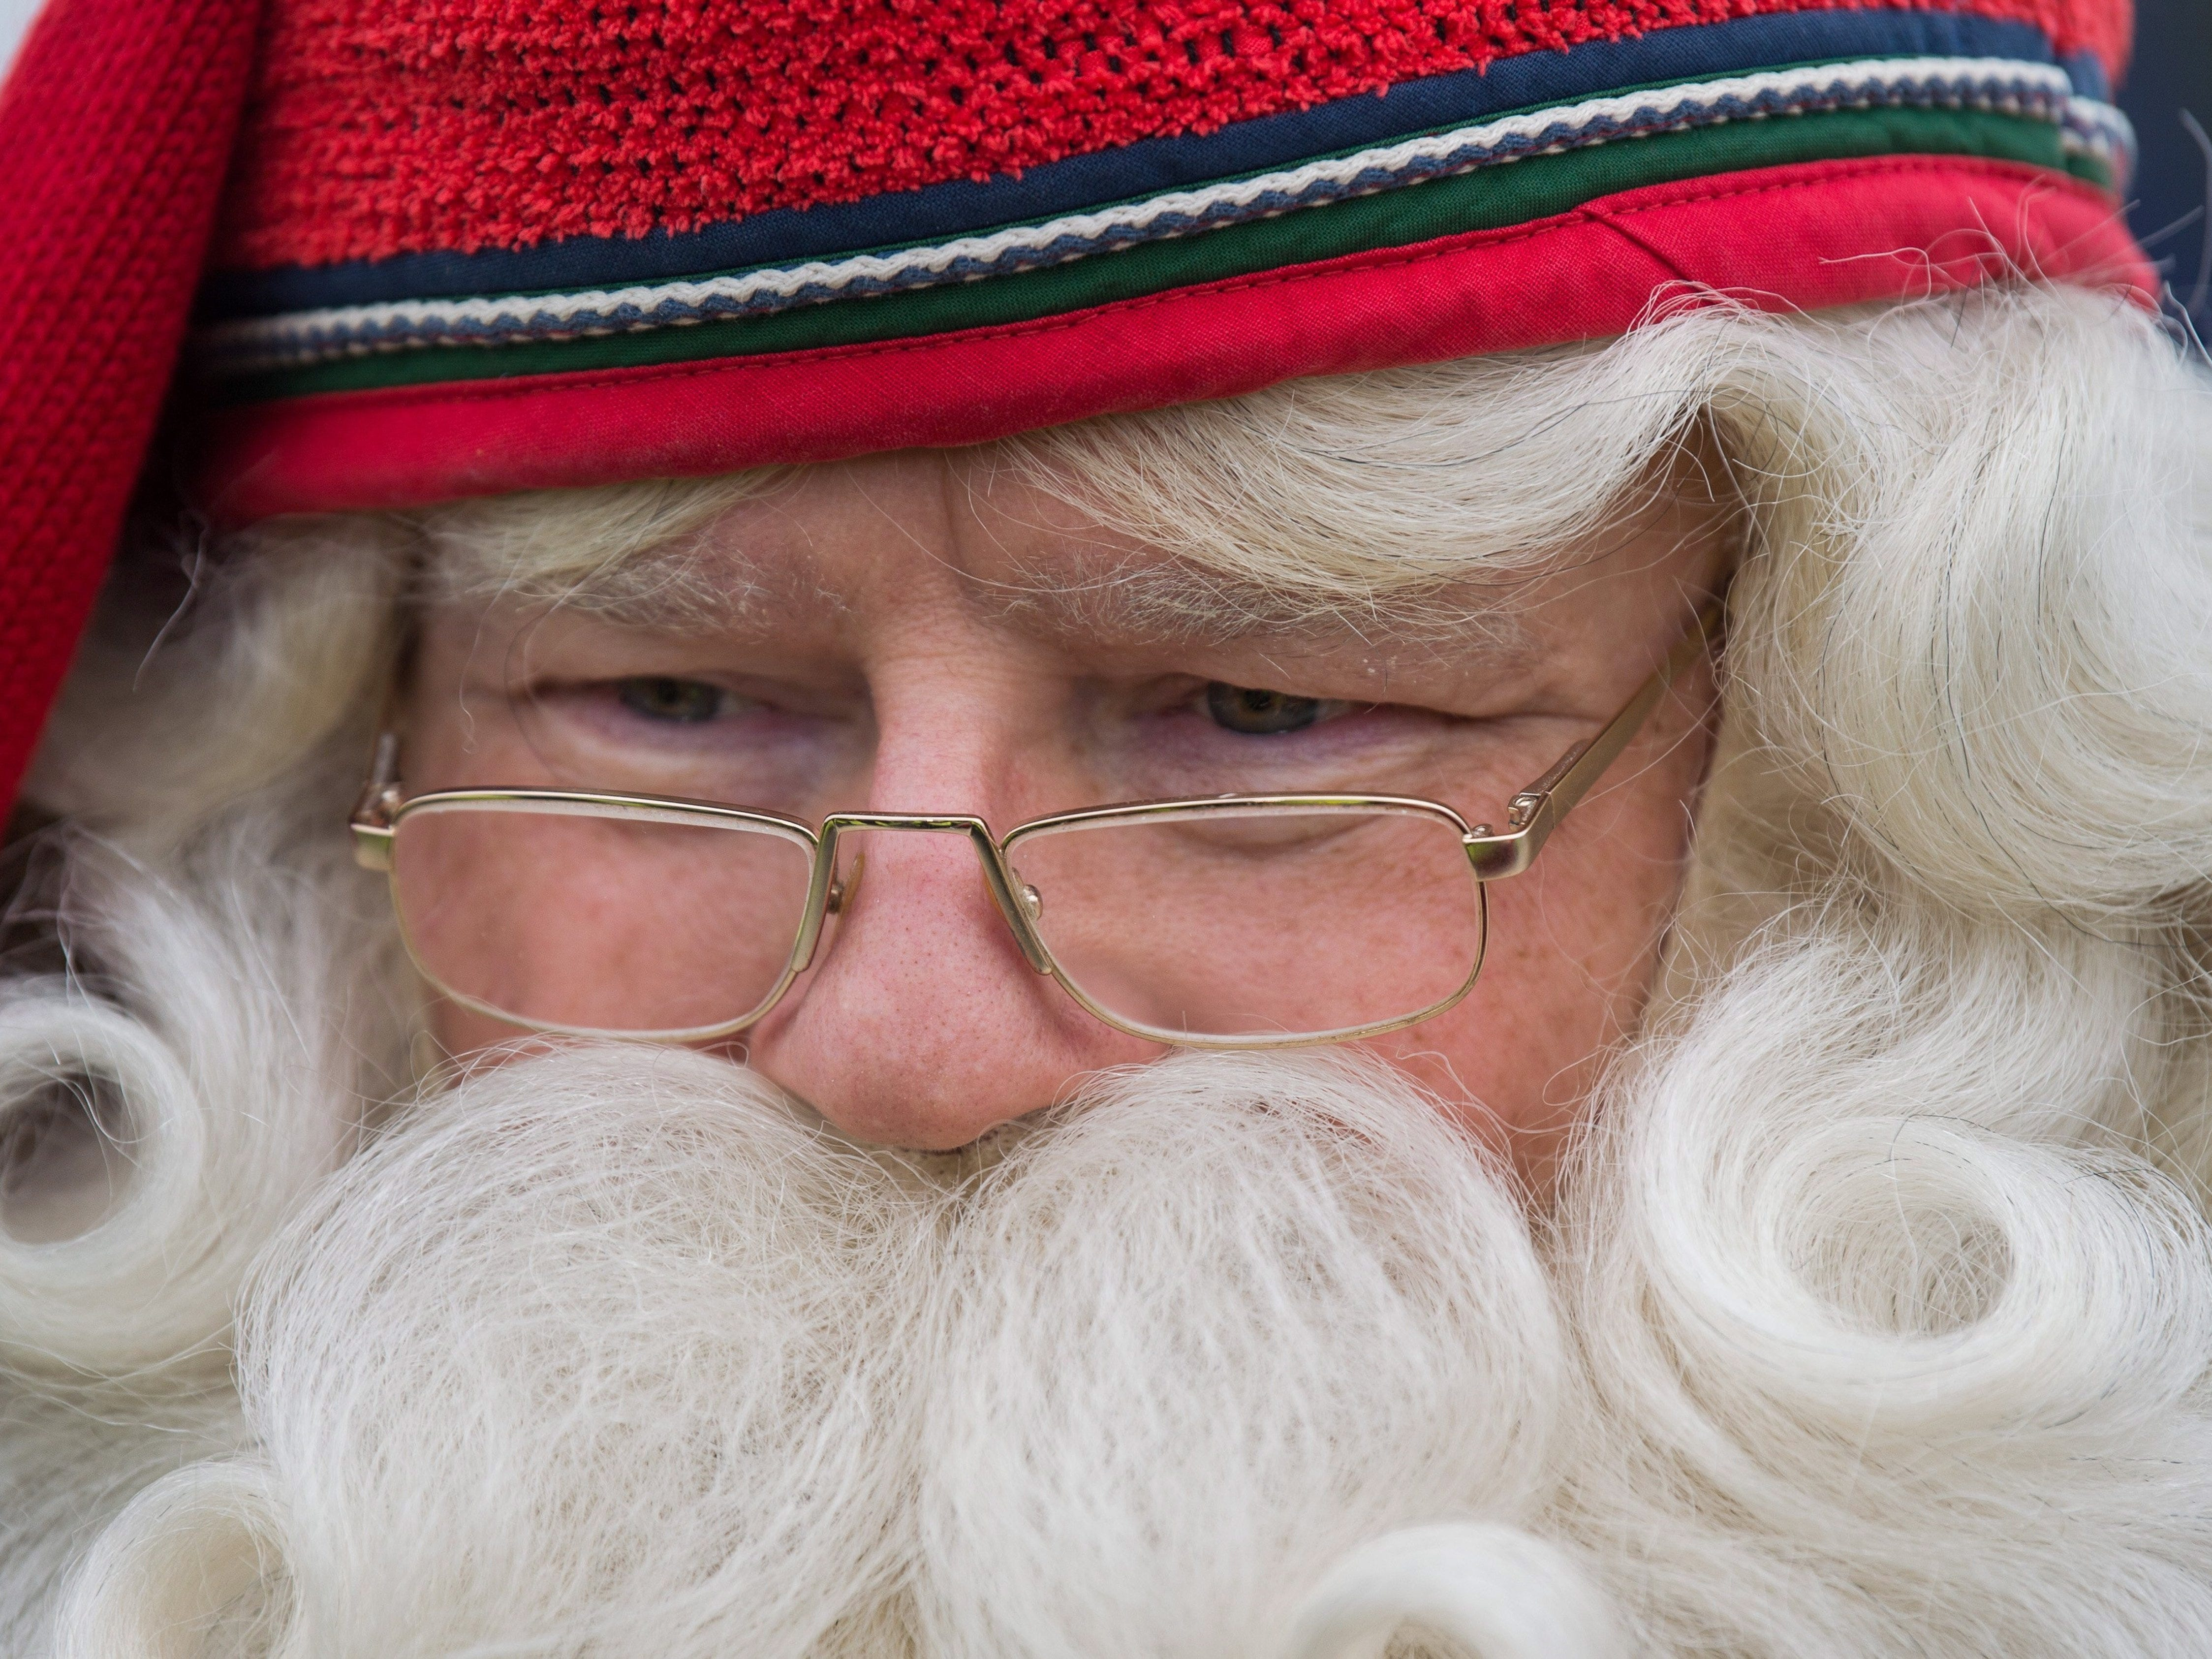 Joulupukki, the Santa Claus from Lappland of Finland is seen upon his arrival at Liszt Ferenc International Airport in Budapest, Hungary, Nov. 29, 2018.